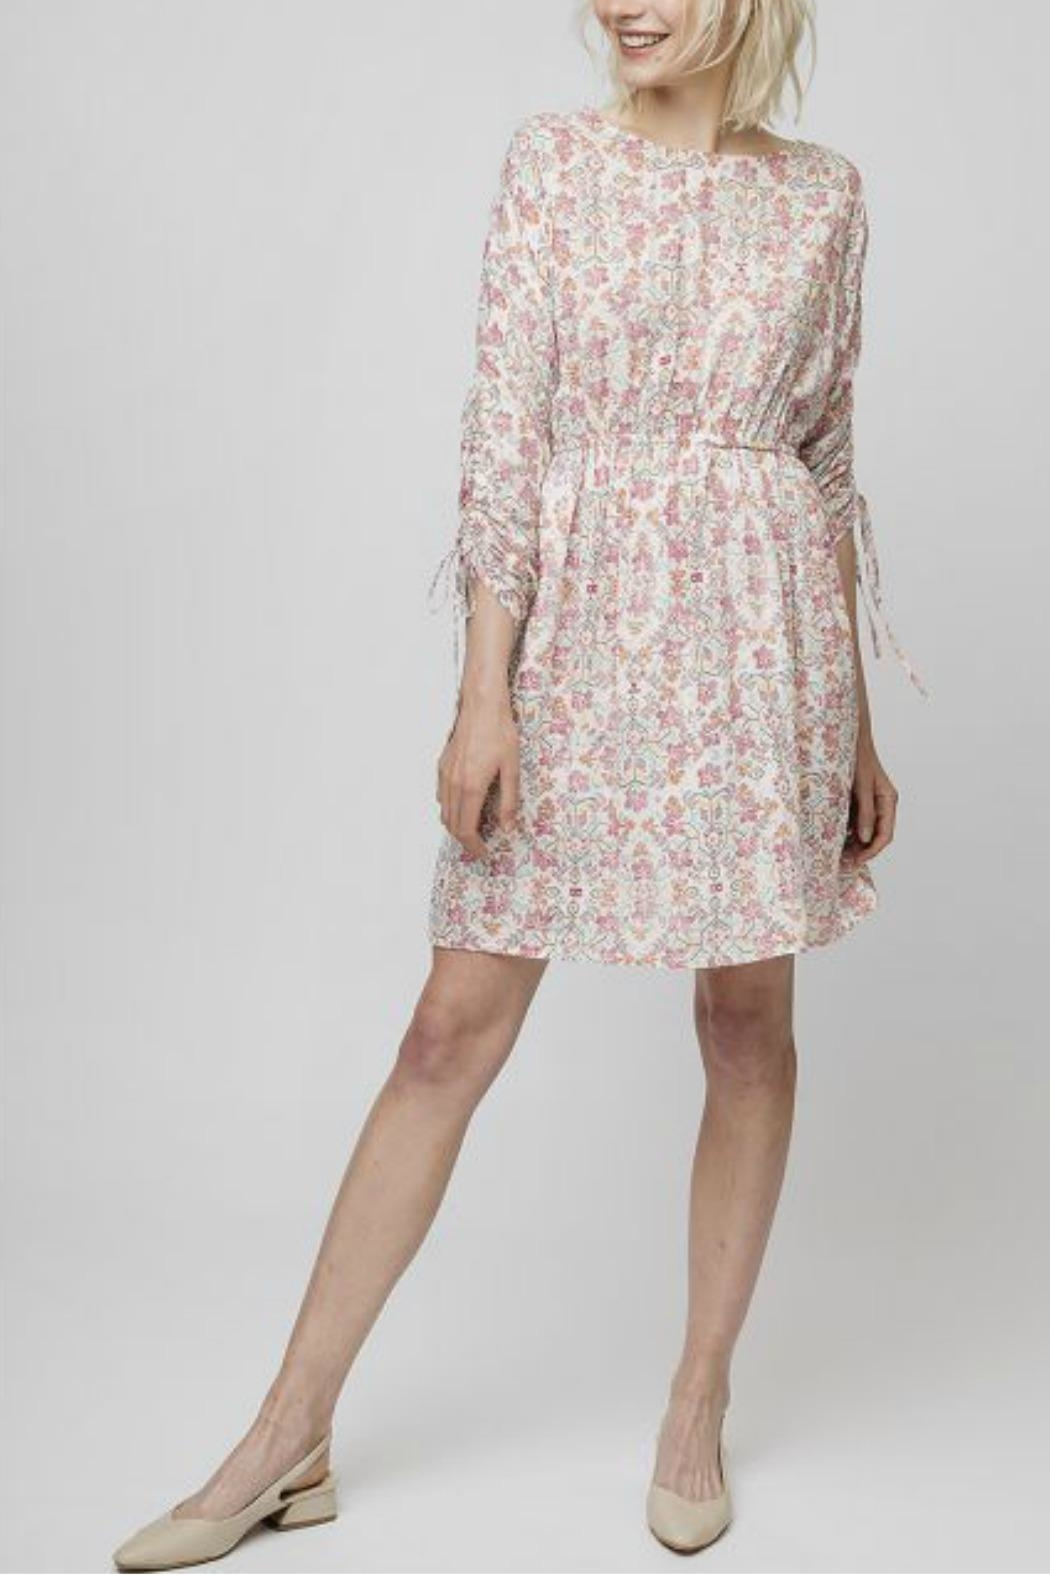 Compania Fantastica Digital Floral Dress - Main Image